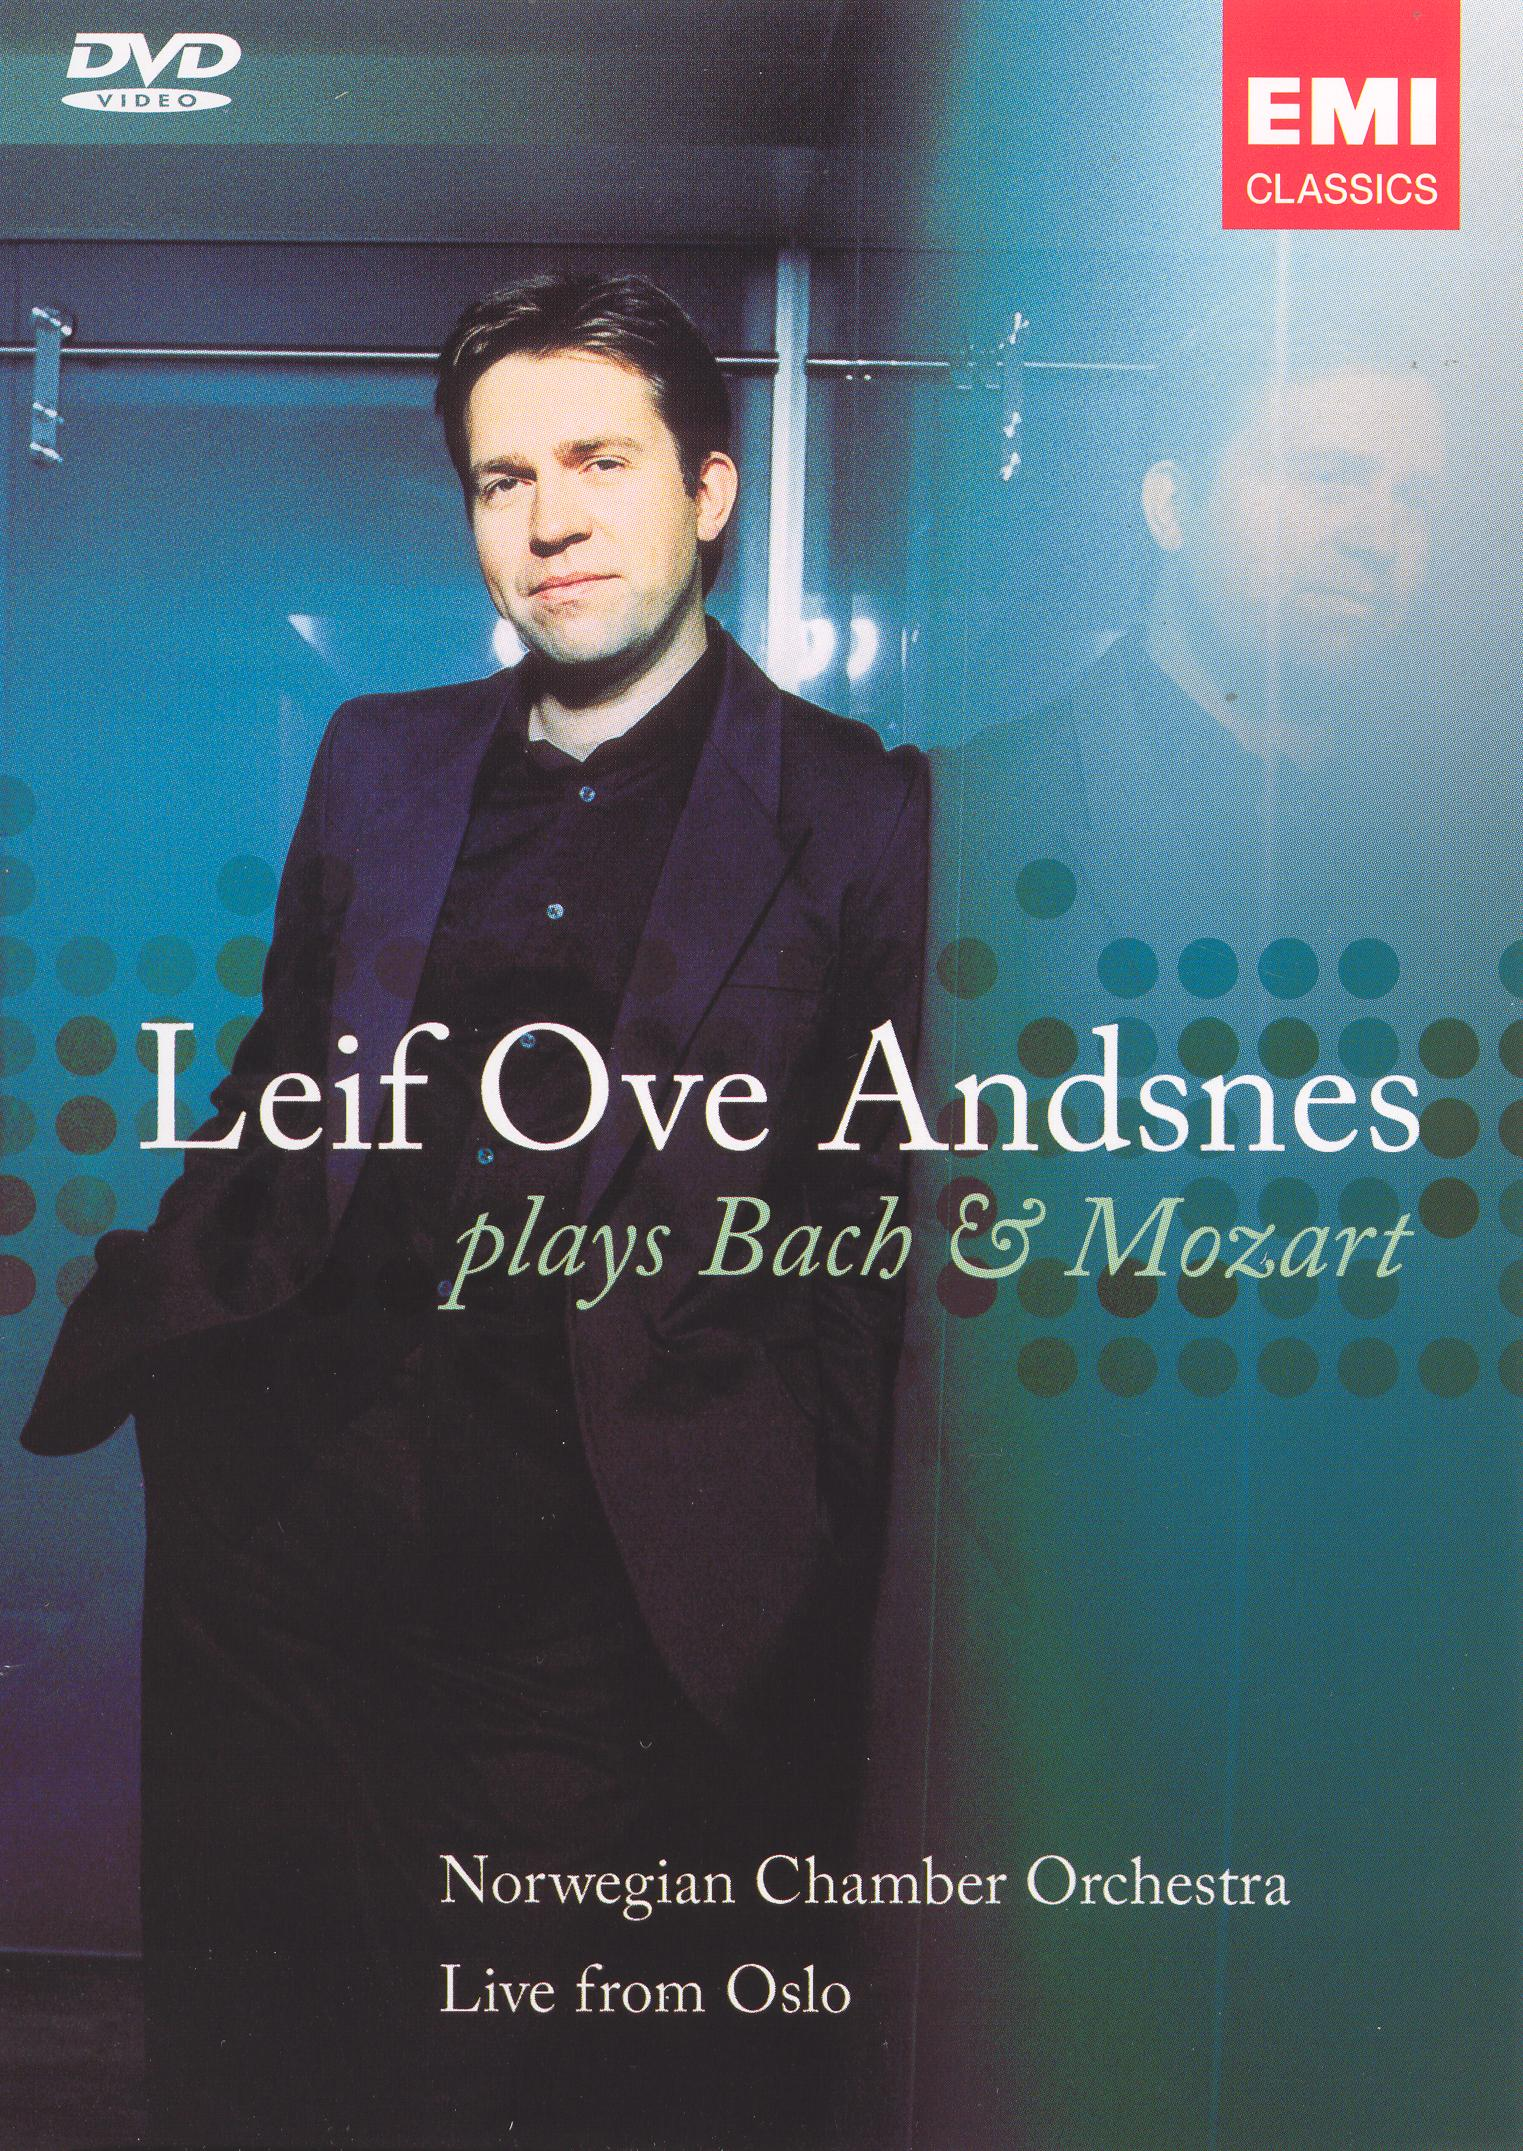 Leif Ove Andsnes: Plays Bach & Mozart